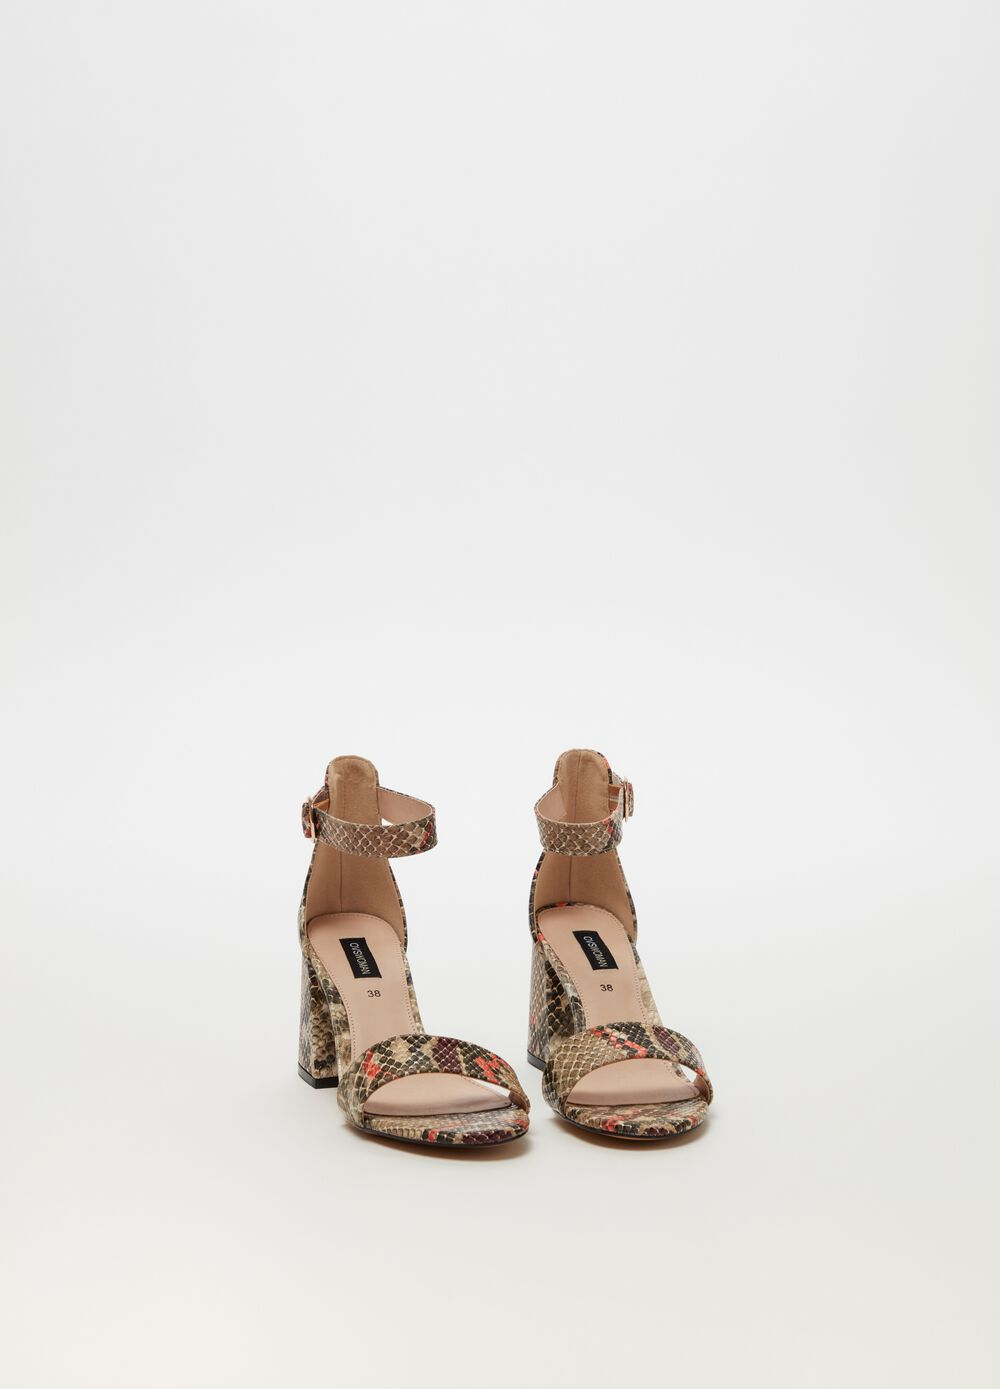 Snakeskin-effect sandals with high heels